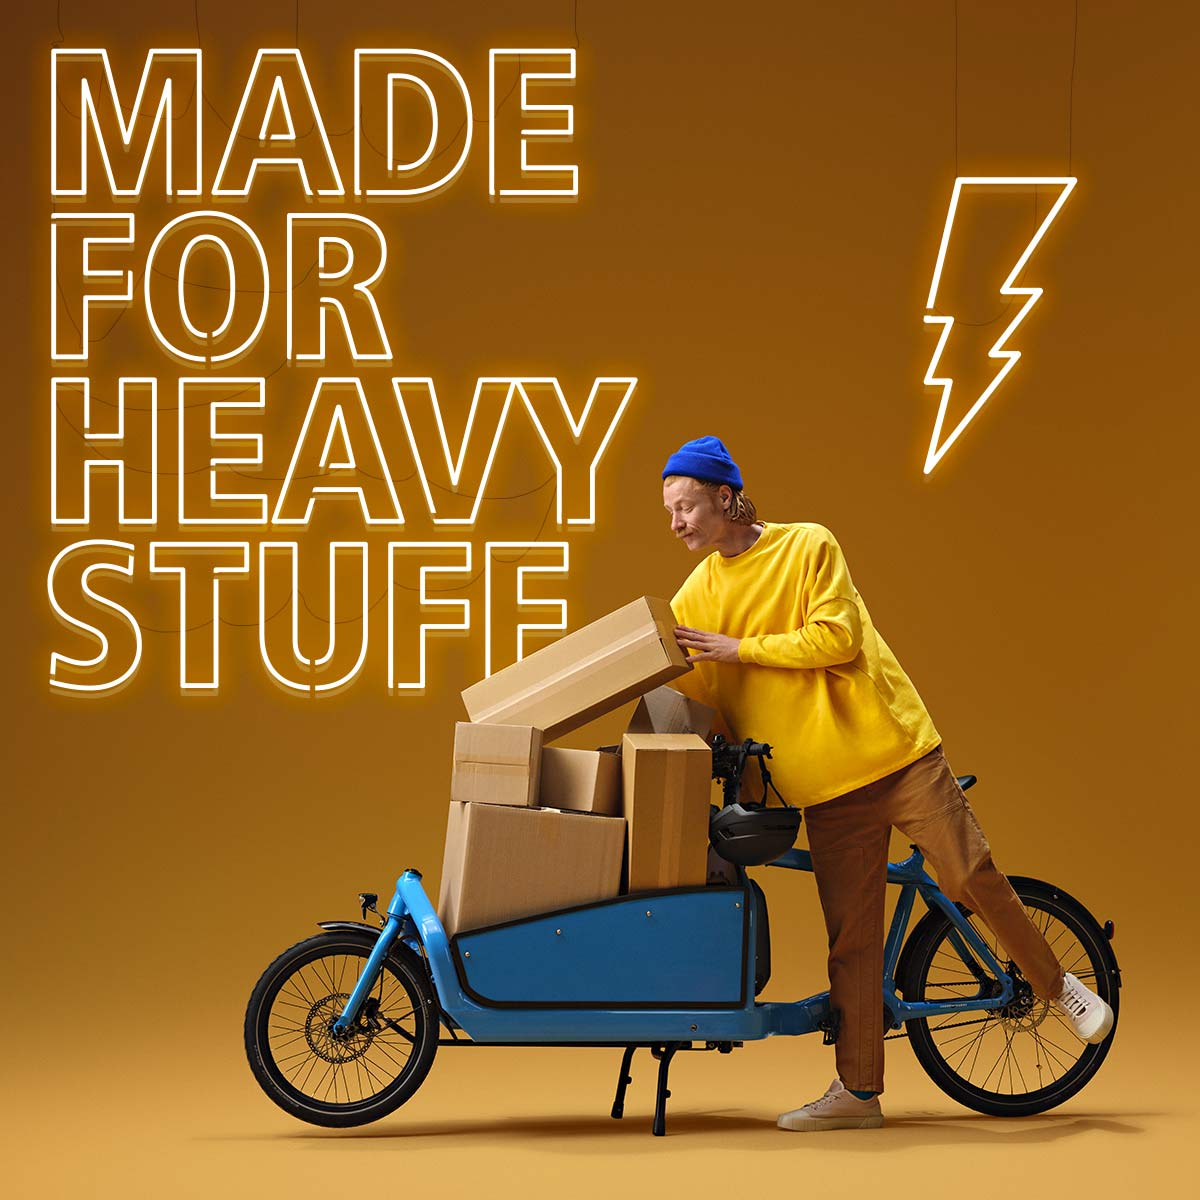 Shimano Cargo e-bikes, heavy-duty electric motor cargo-specific power tunes, made for heavy stuff